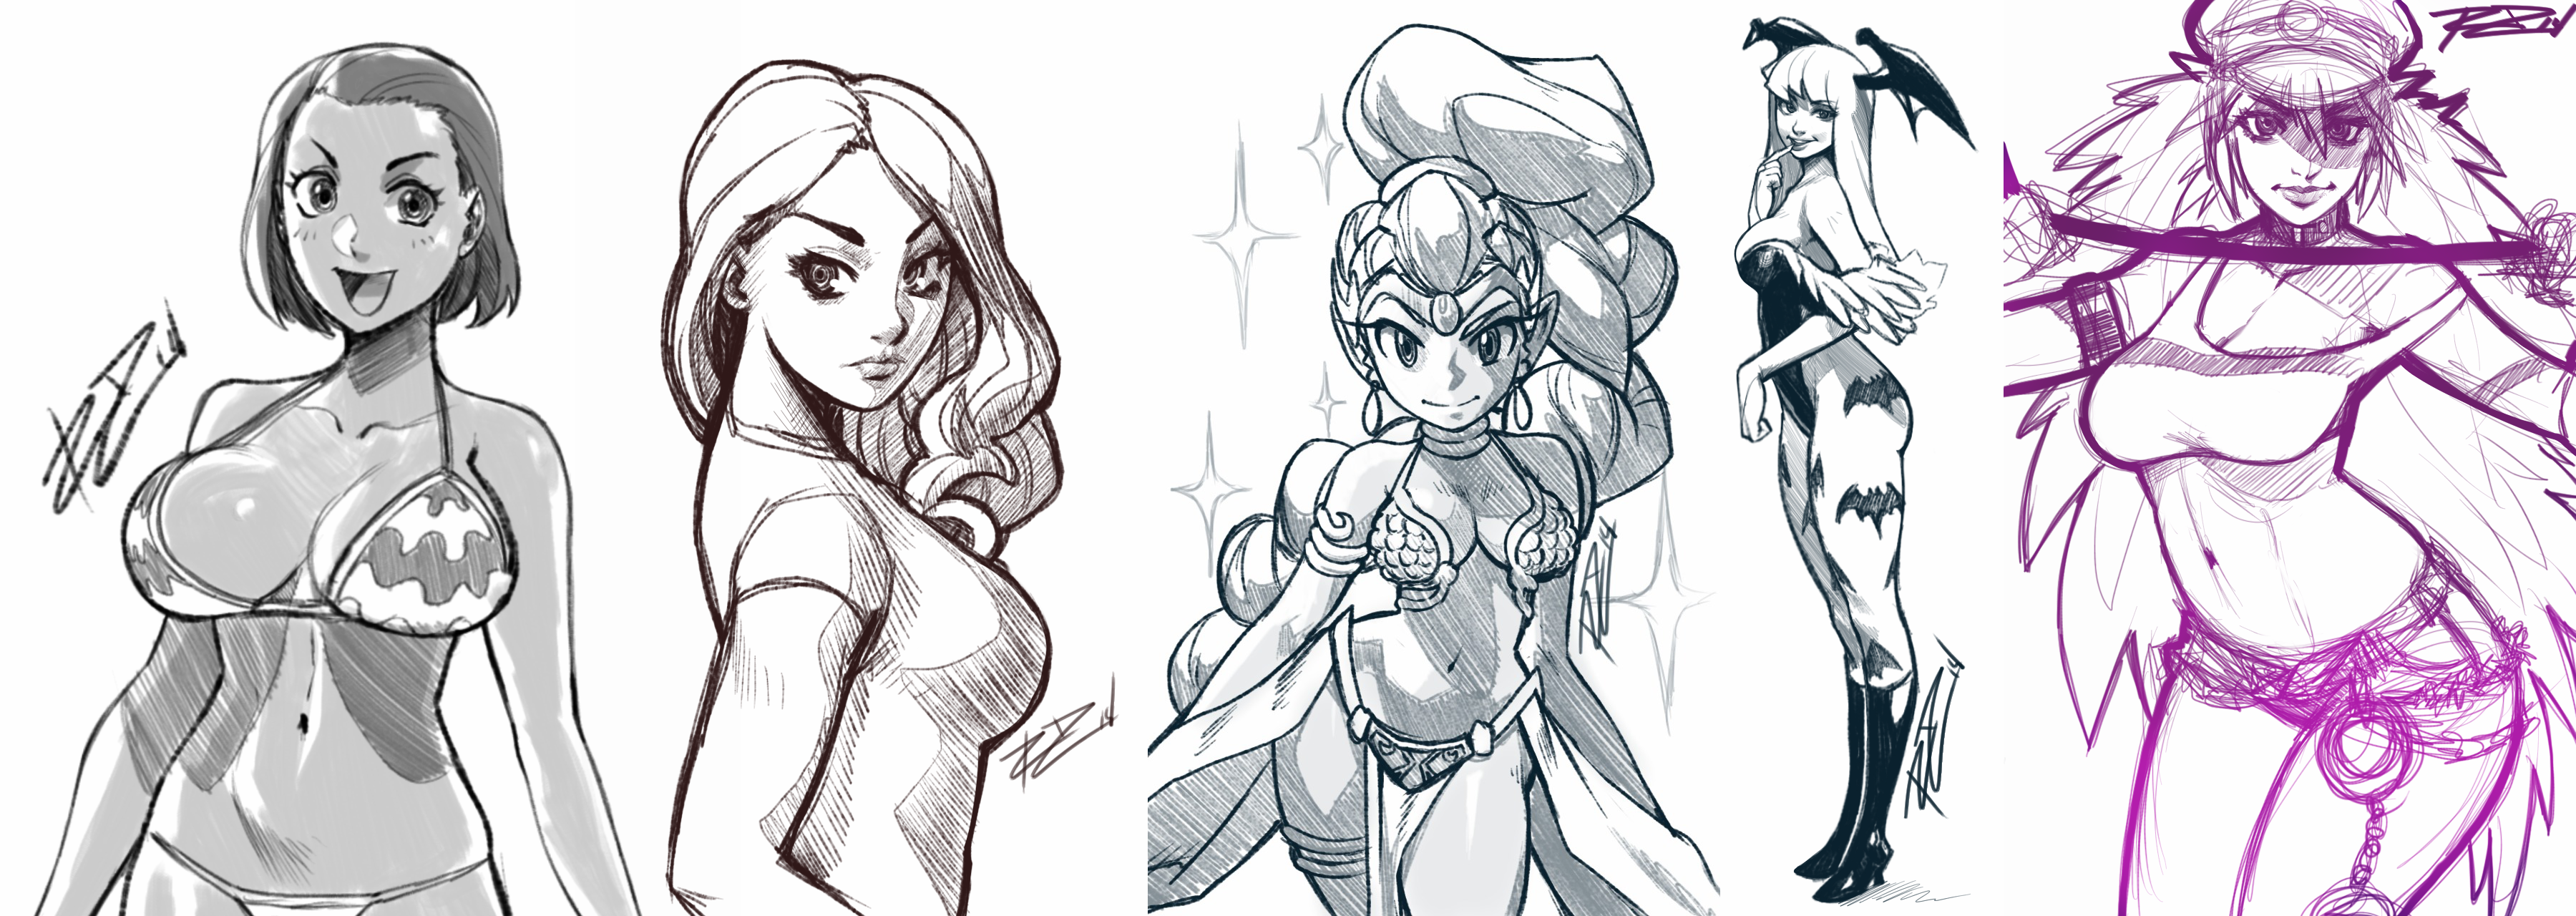 Some Galaxy Note Sketchees by Robaato